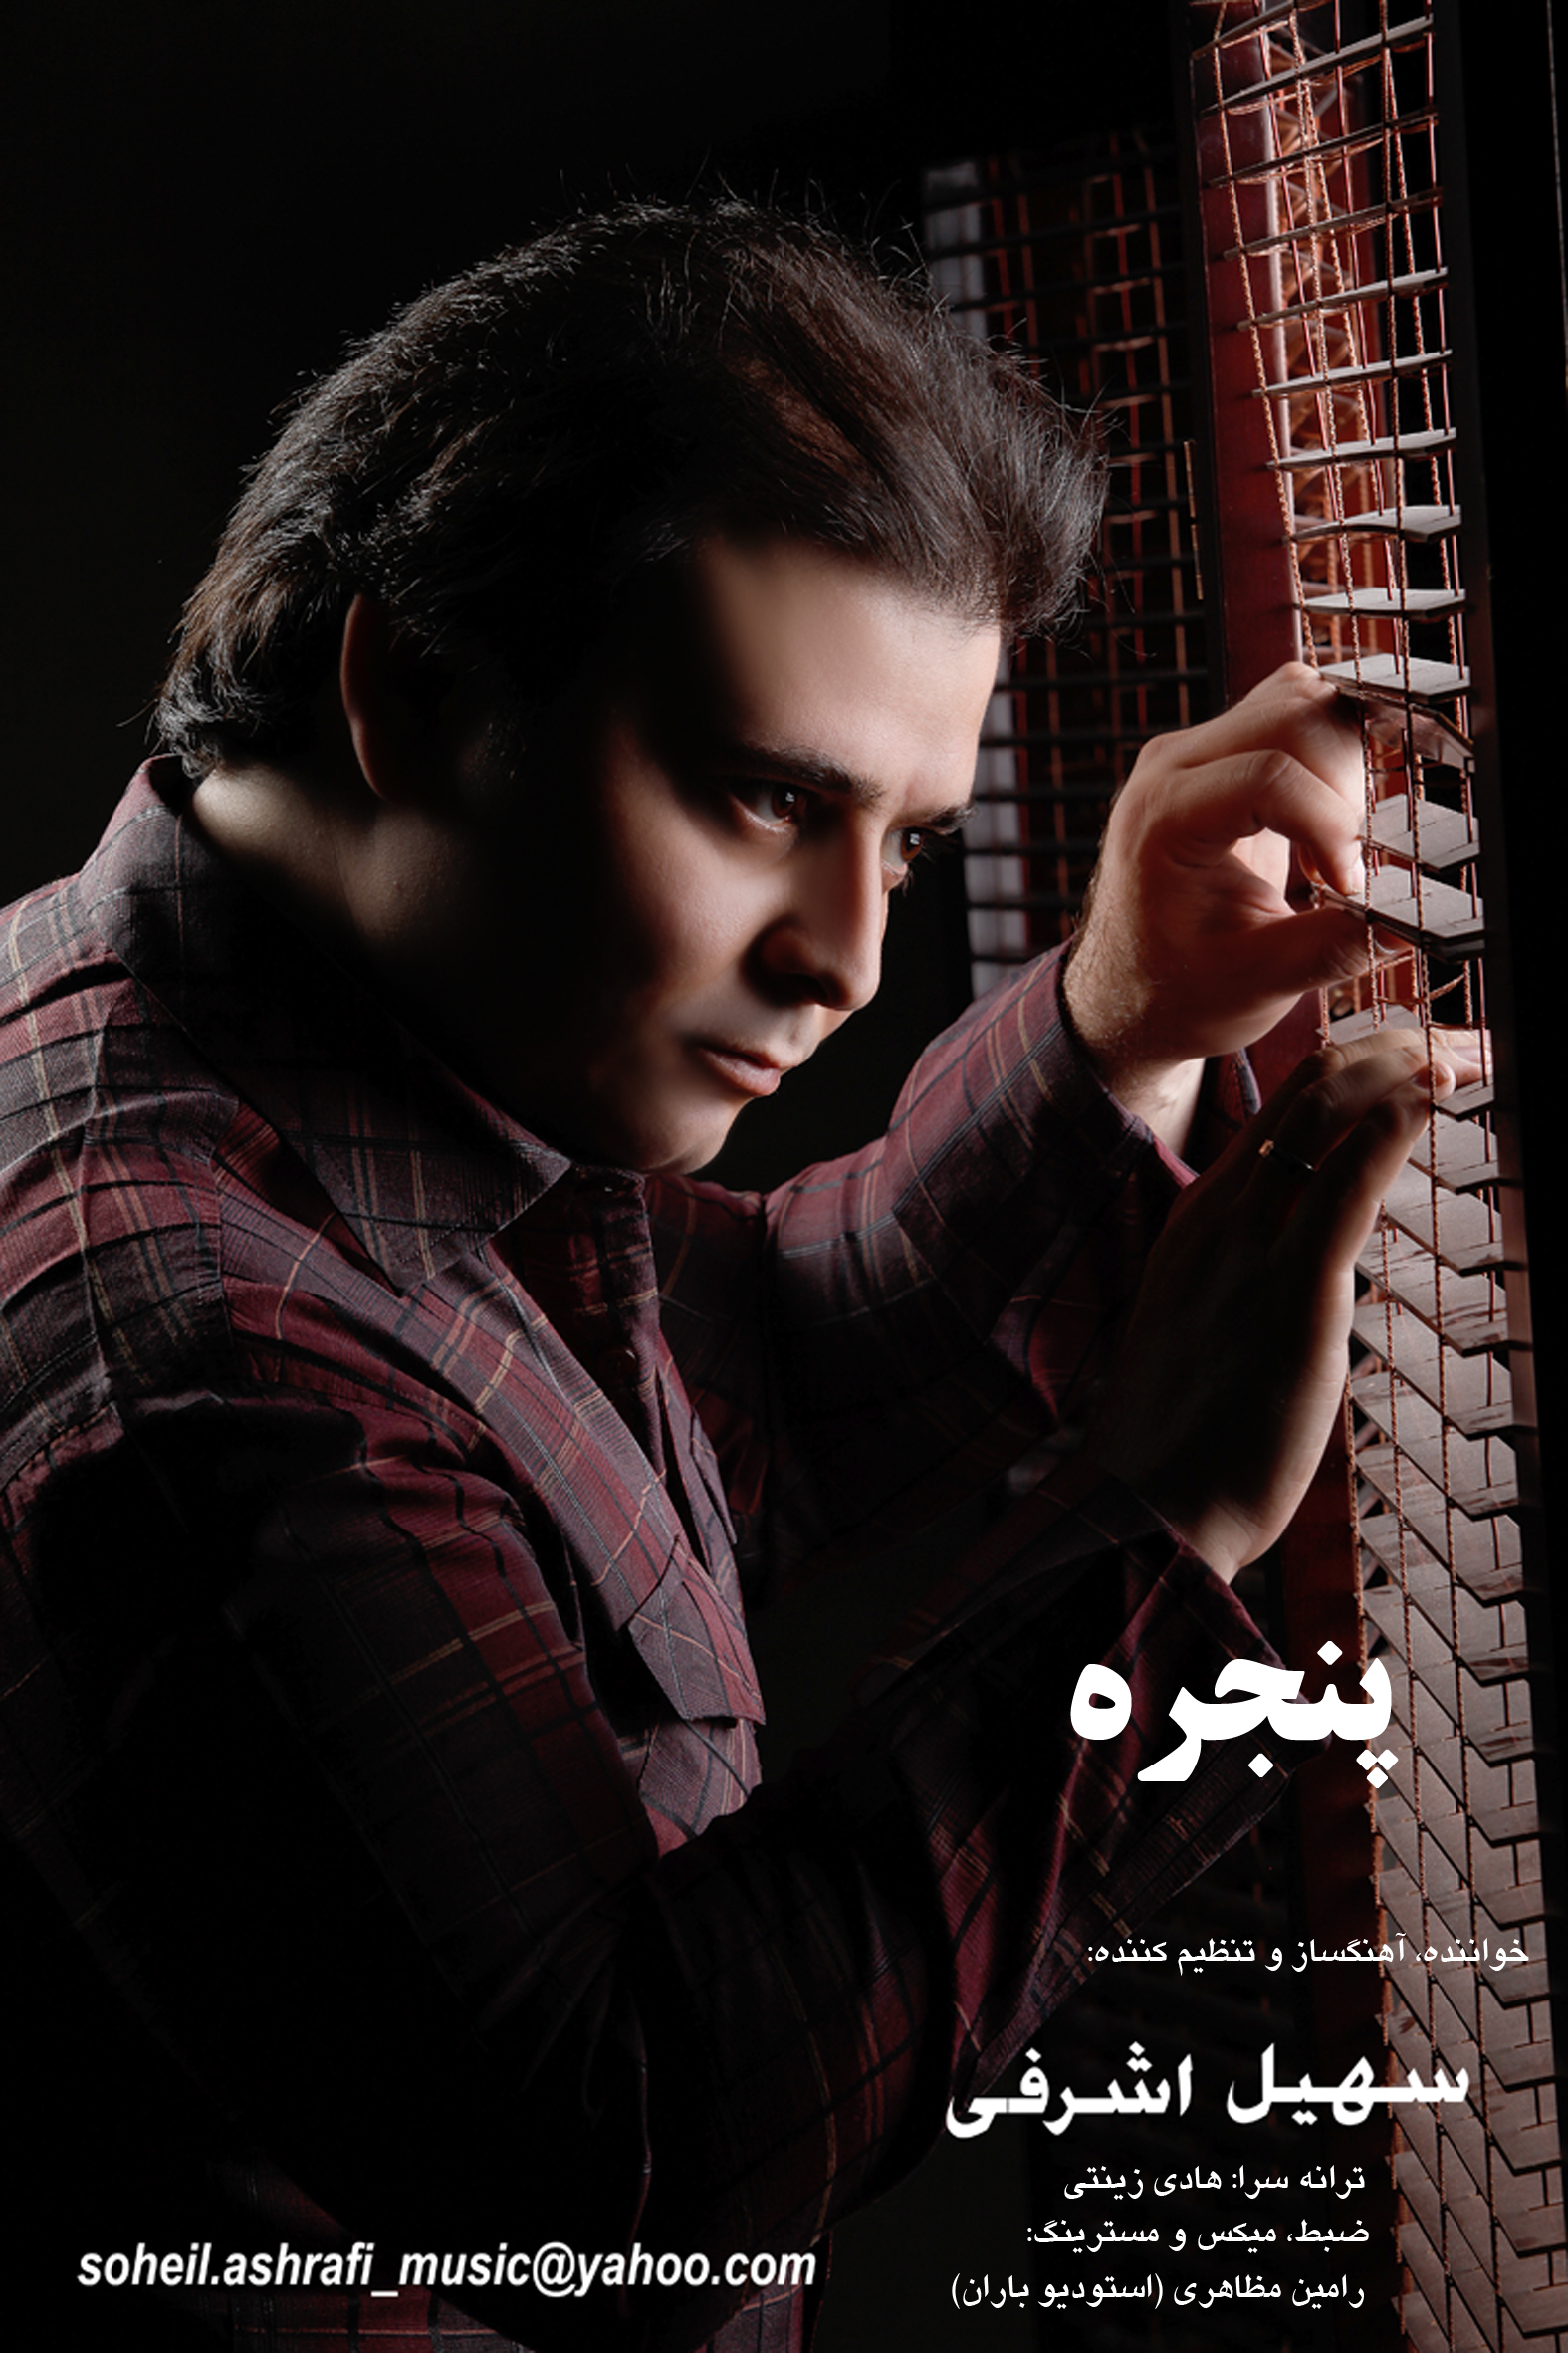 http://teamshz.persiangig.com/yt/_MG1_0467-2BAR.jpg